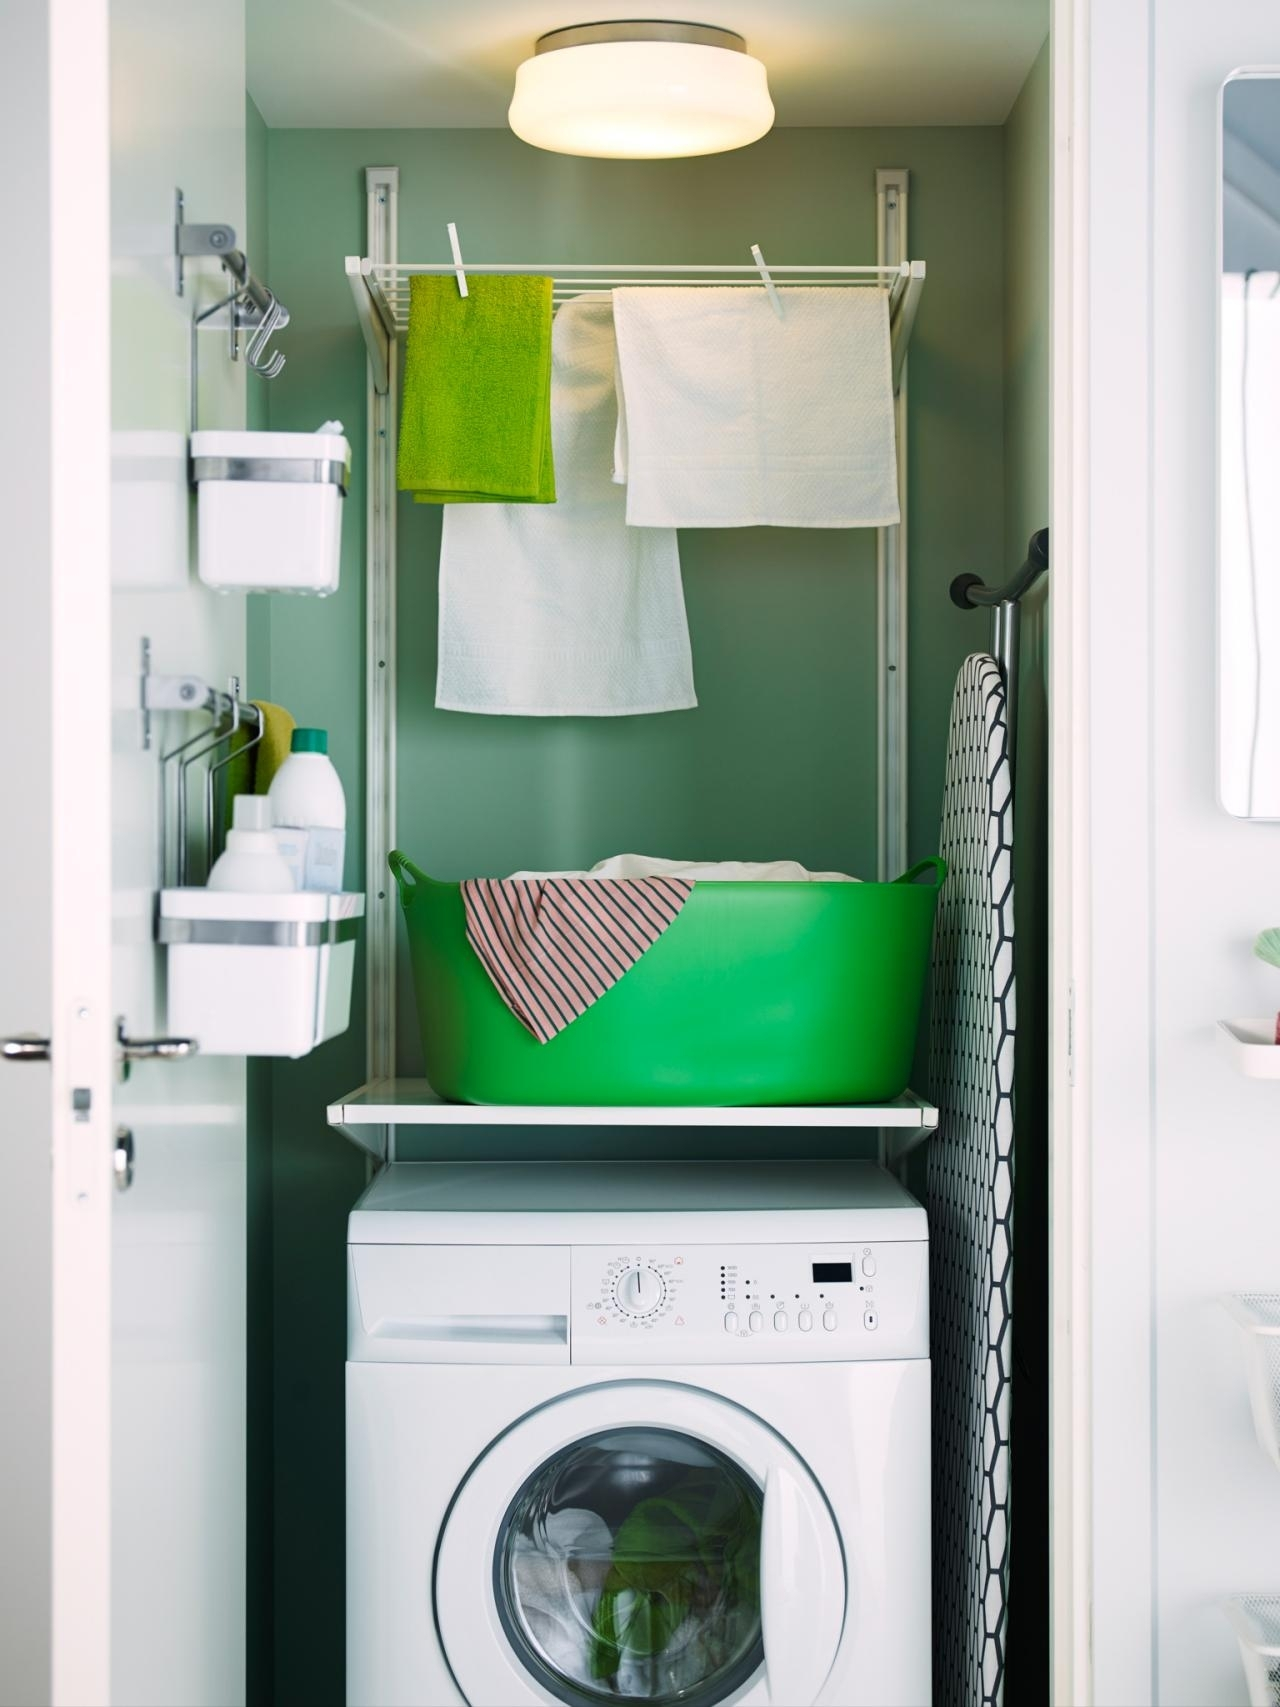 10 Best Laundry Room Ideas For Small Spaces %name 2021